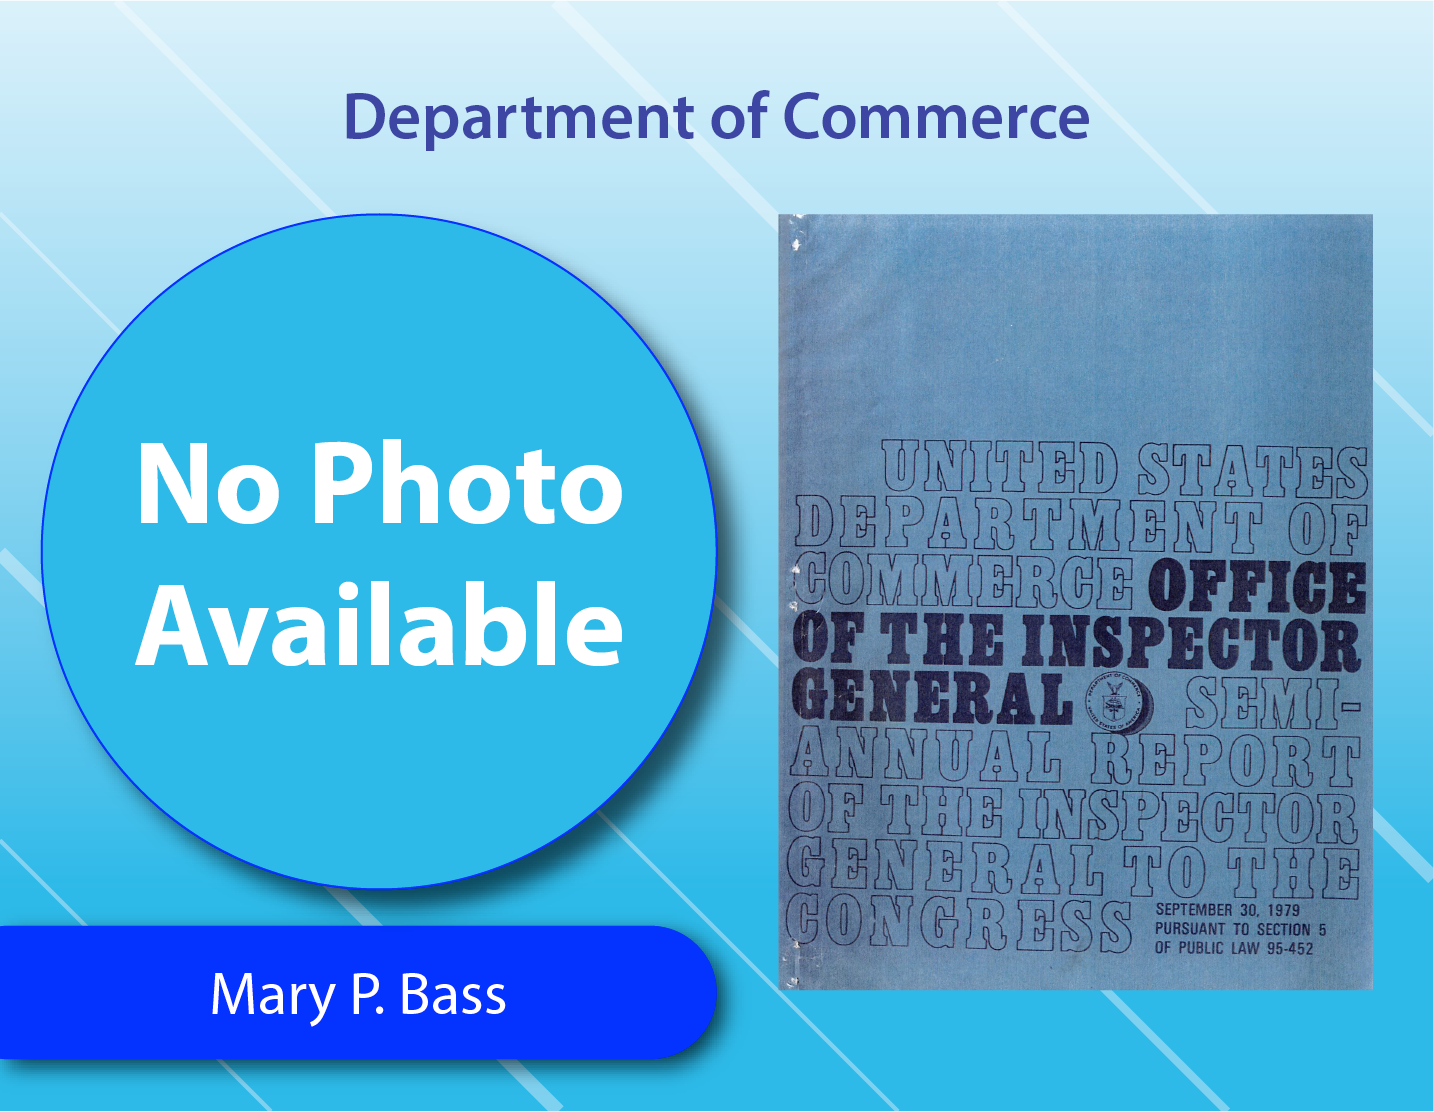 Department of Commerce - Mary P. Bass